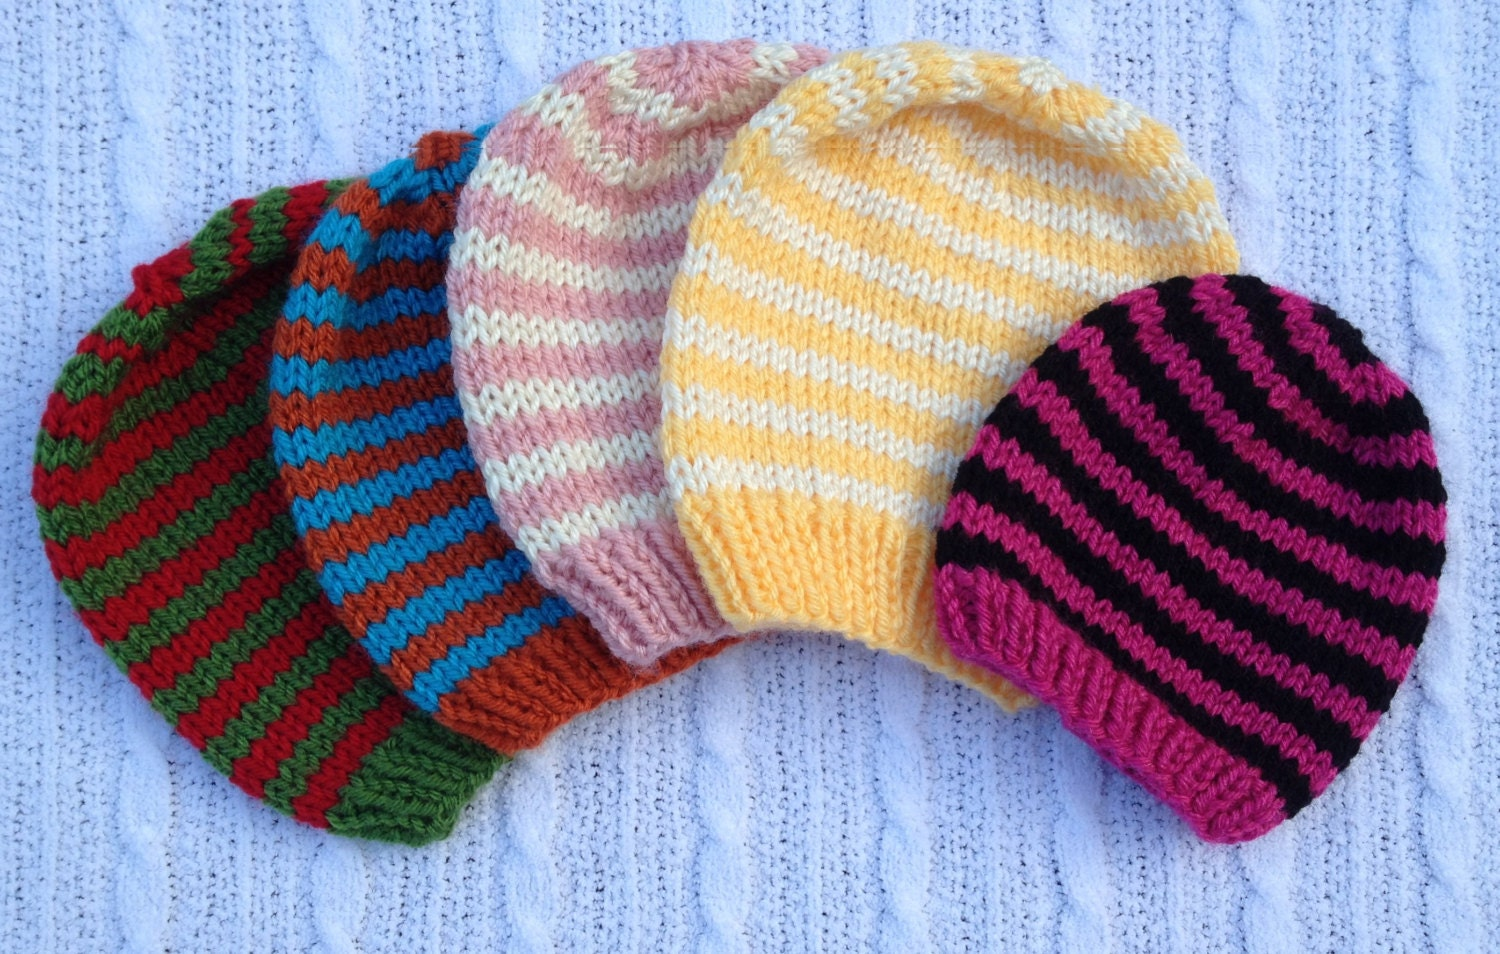 Toddler Beanie Knitting Pattern : PDF knitting pattern Basic simple baby beanie hat